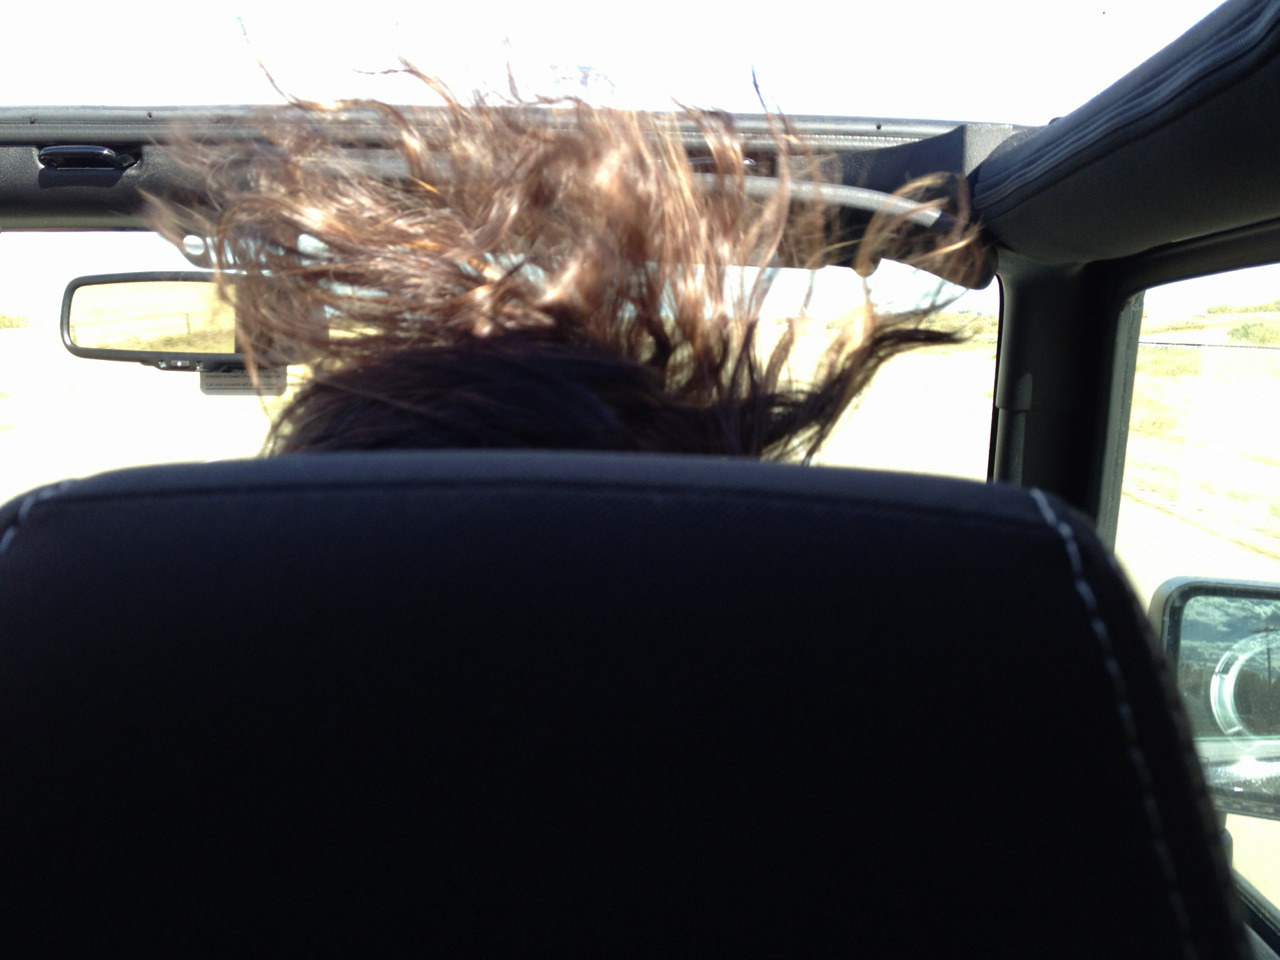 even amber's hair was having a good time in the jeep today.